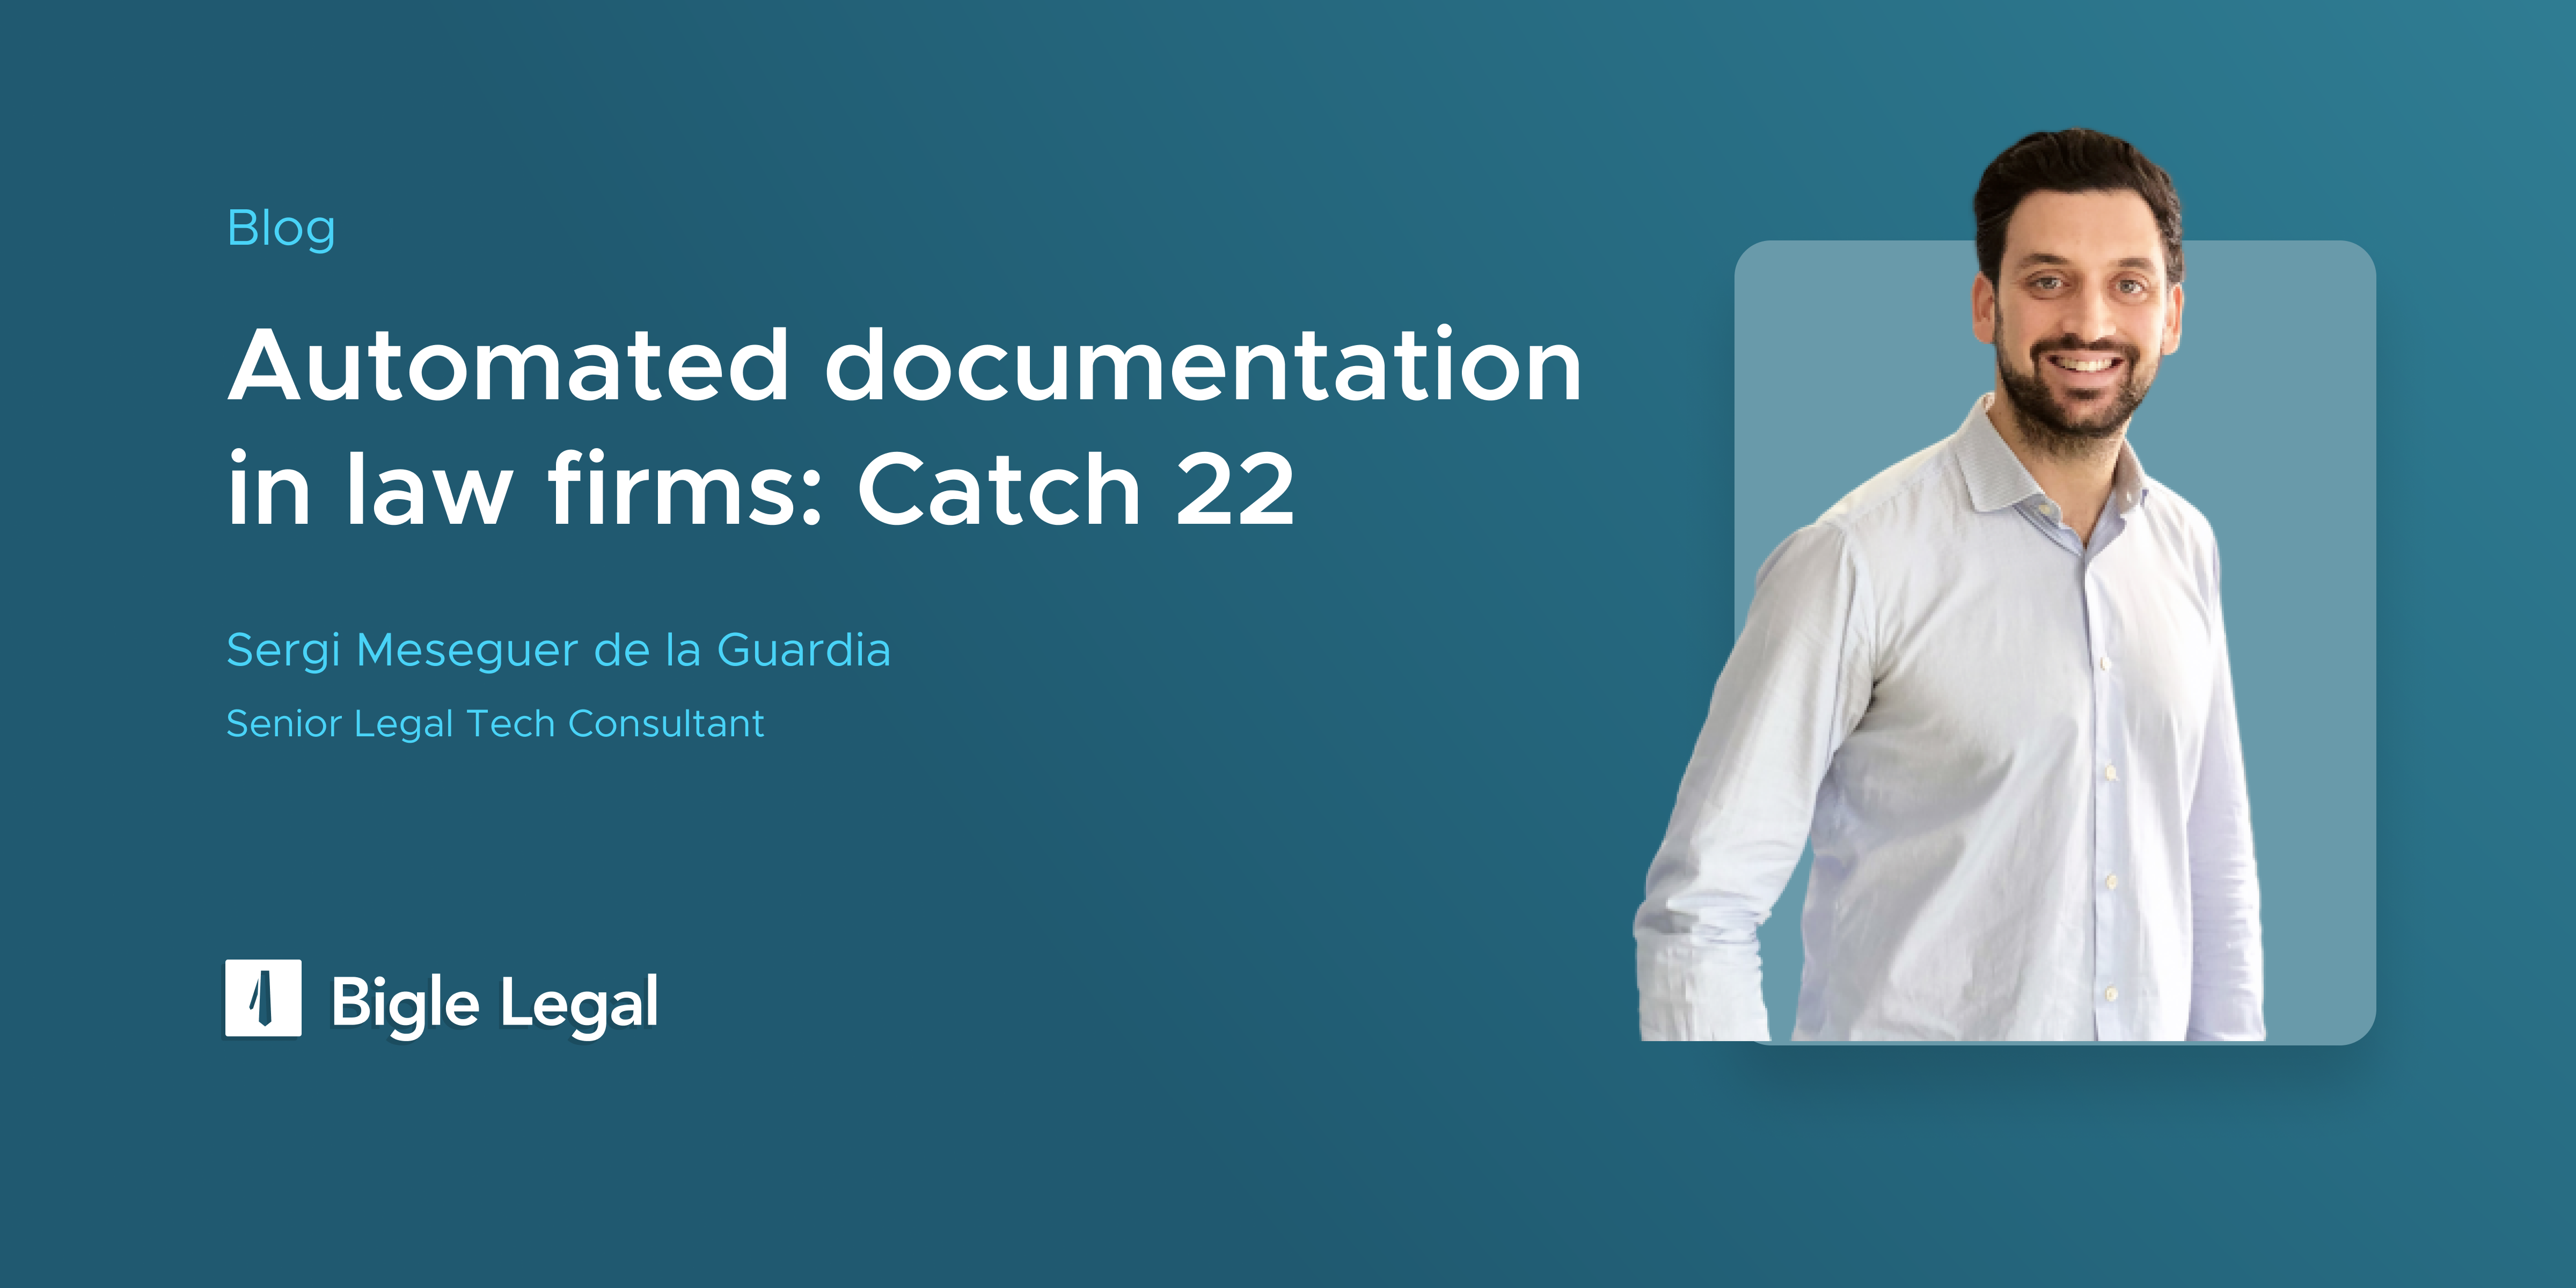 Catch 22: document automation in lawfirms